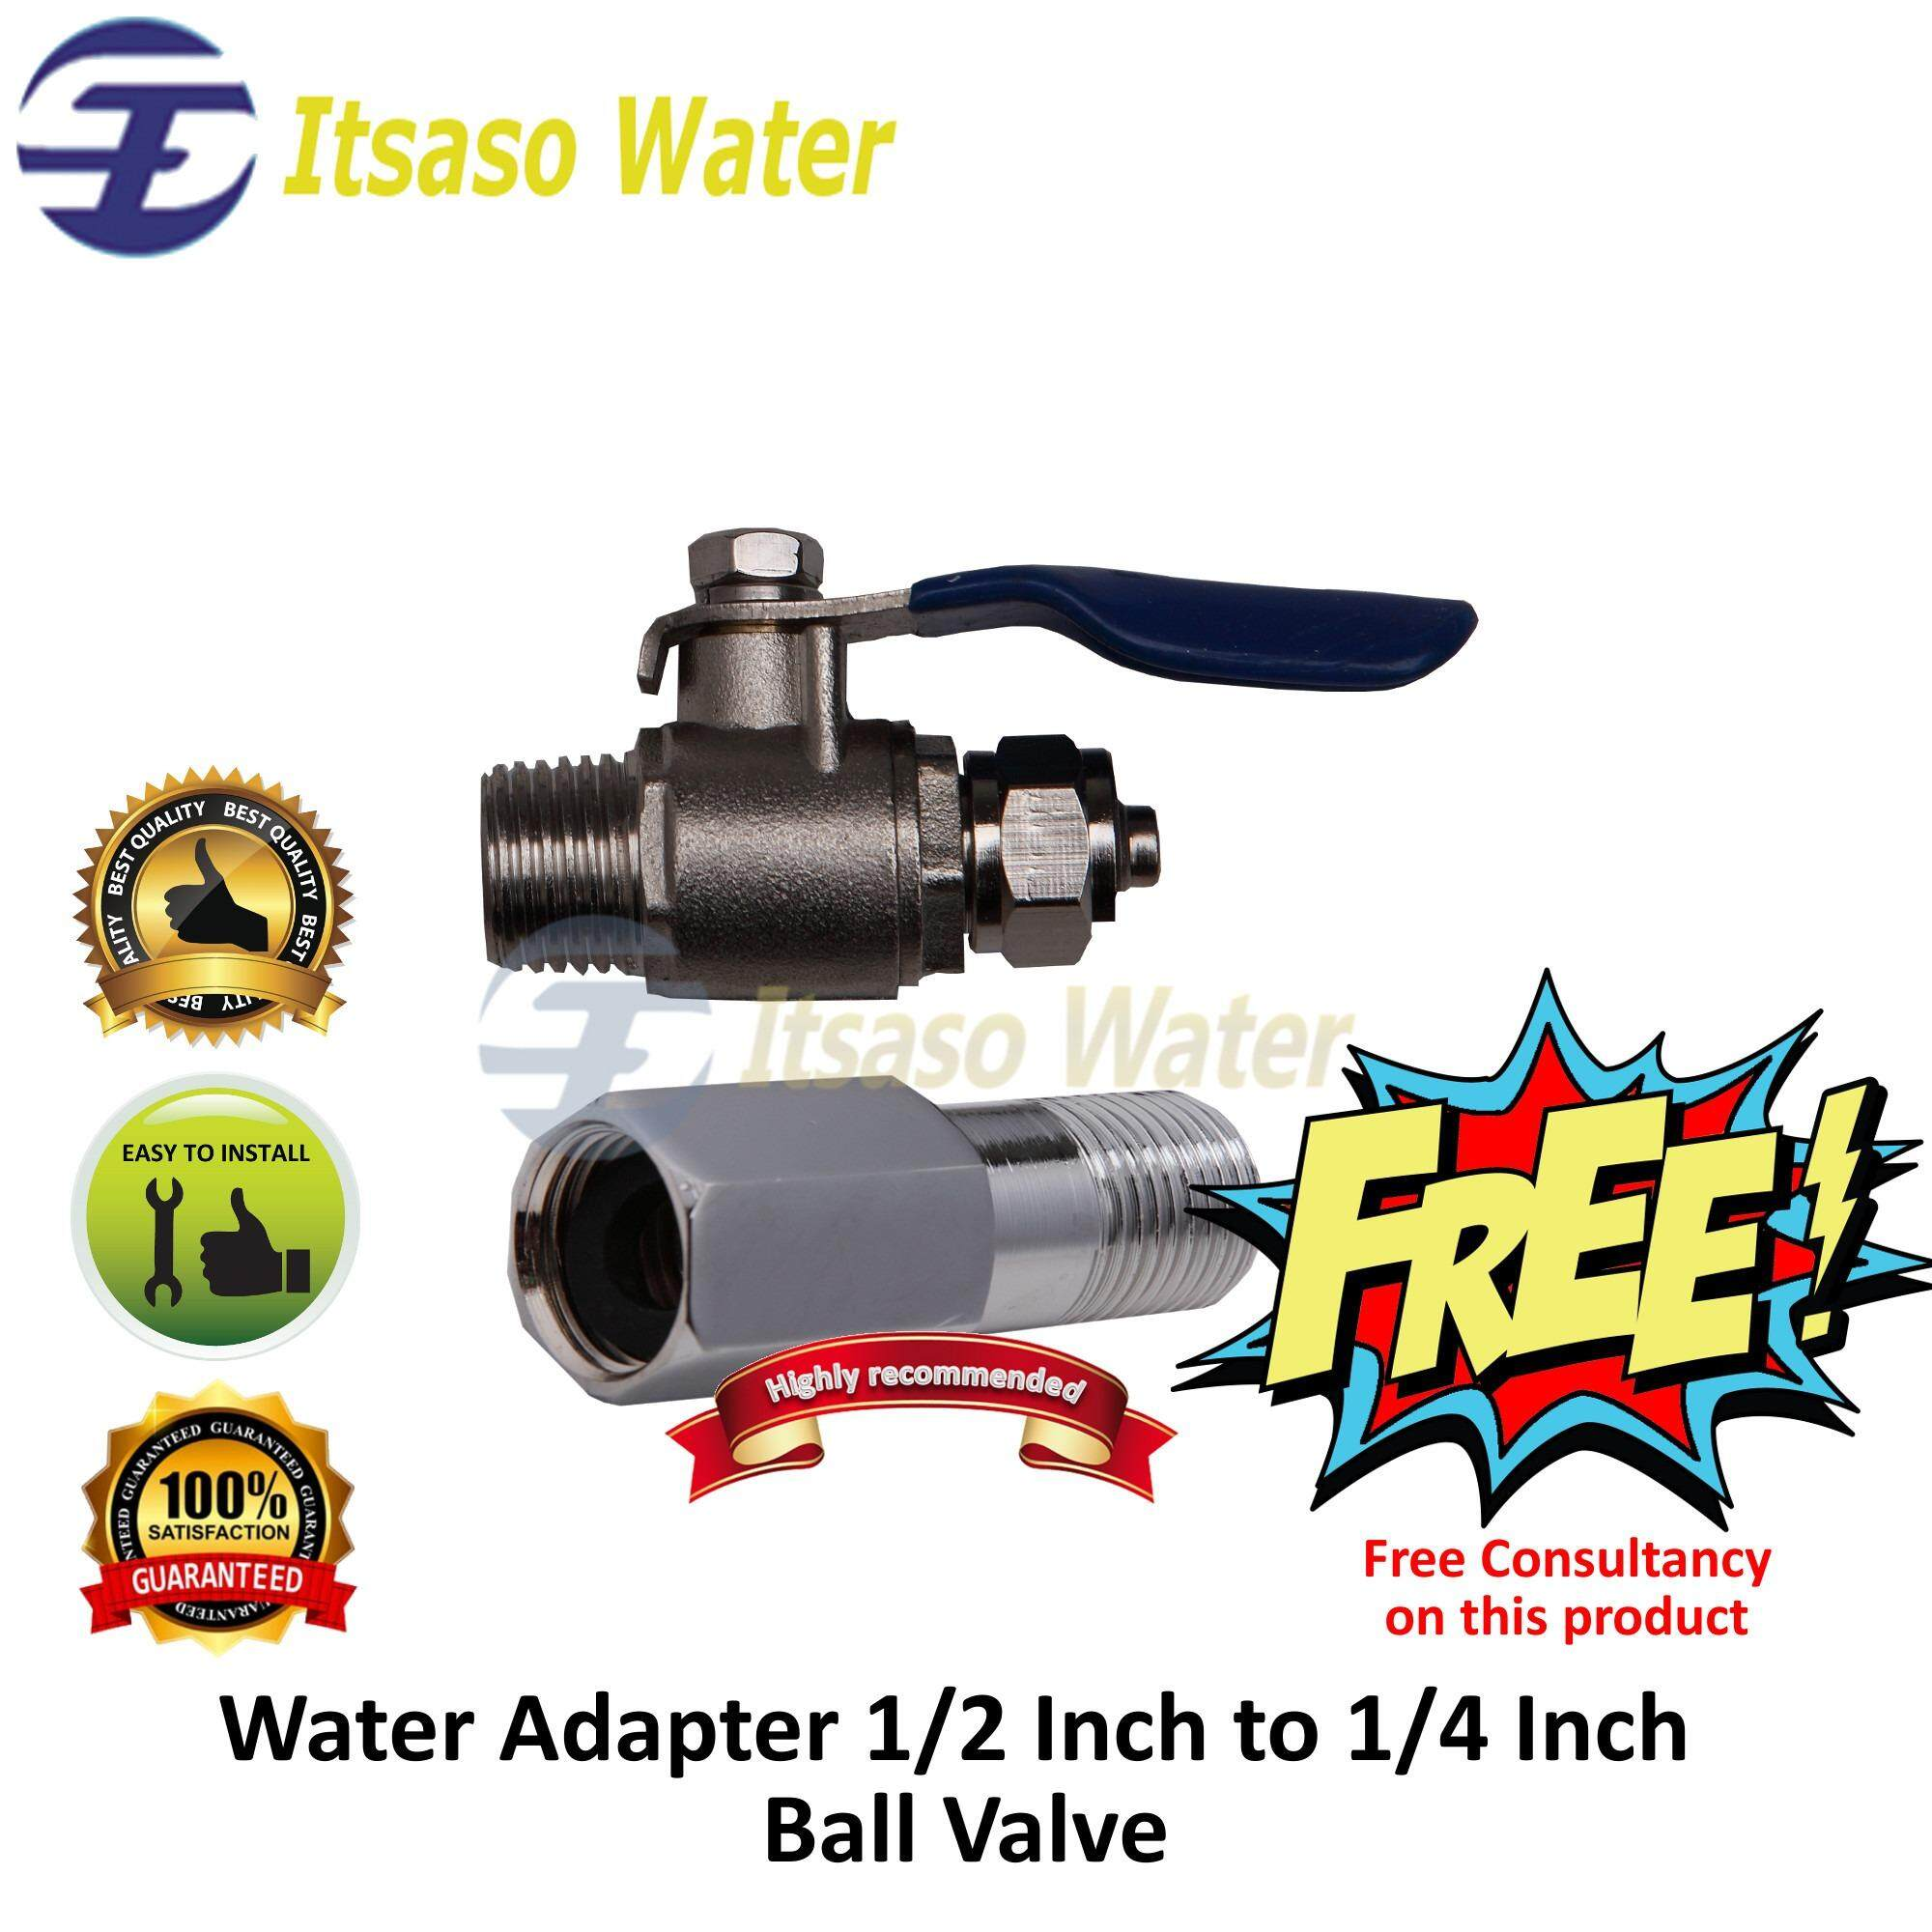 Water Adapter 1 2 Inch to 1 4 Inch Ball Valve